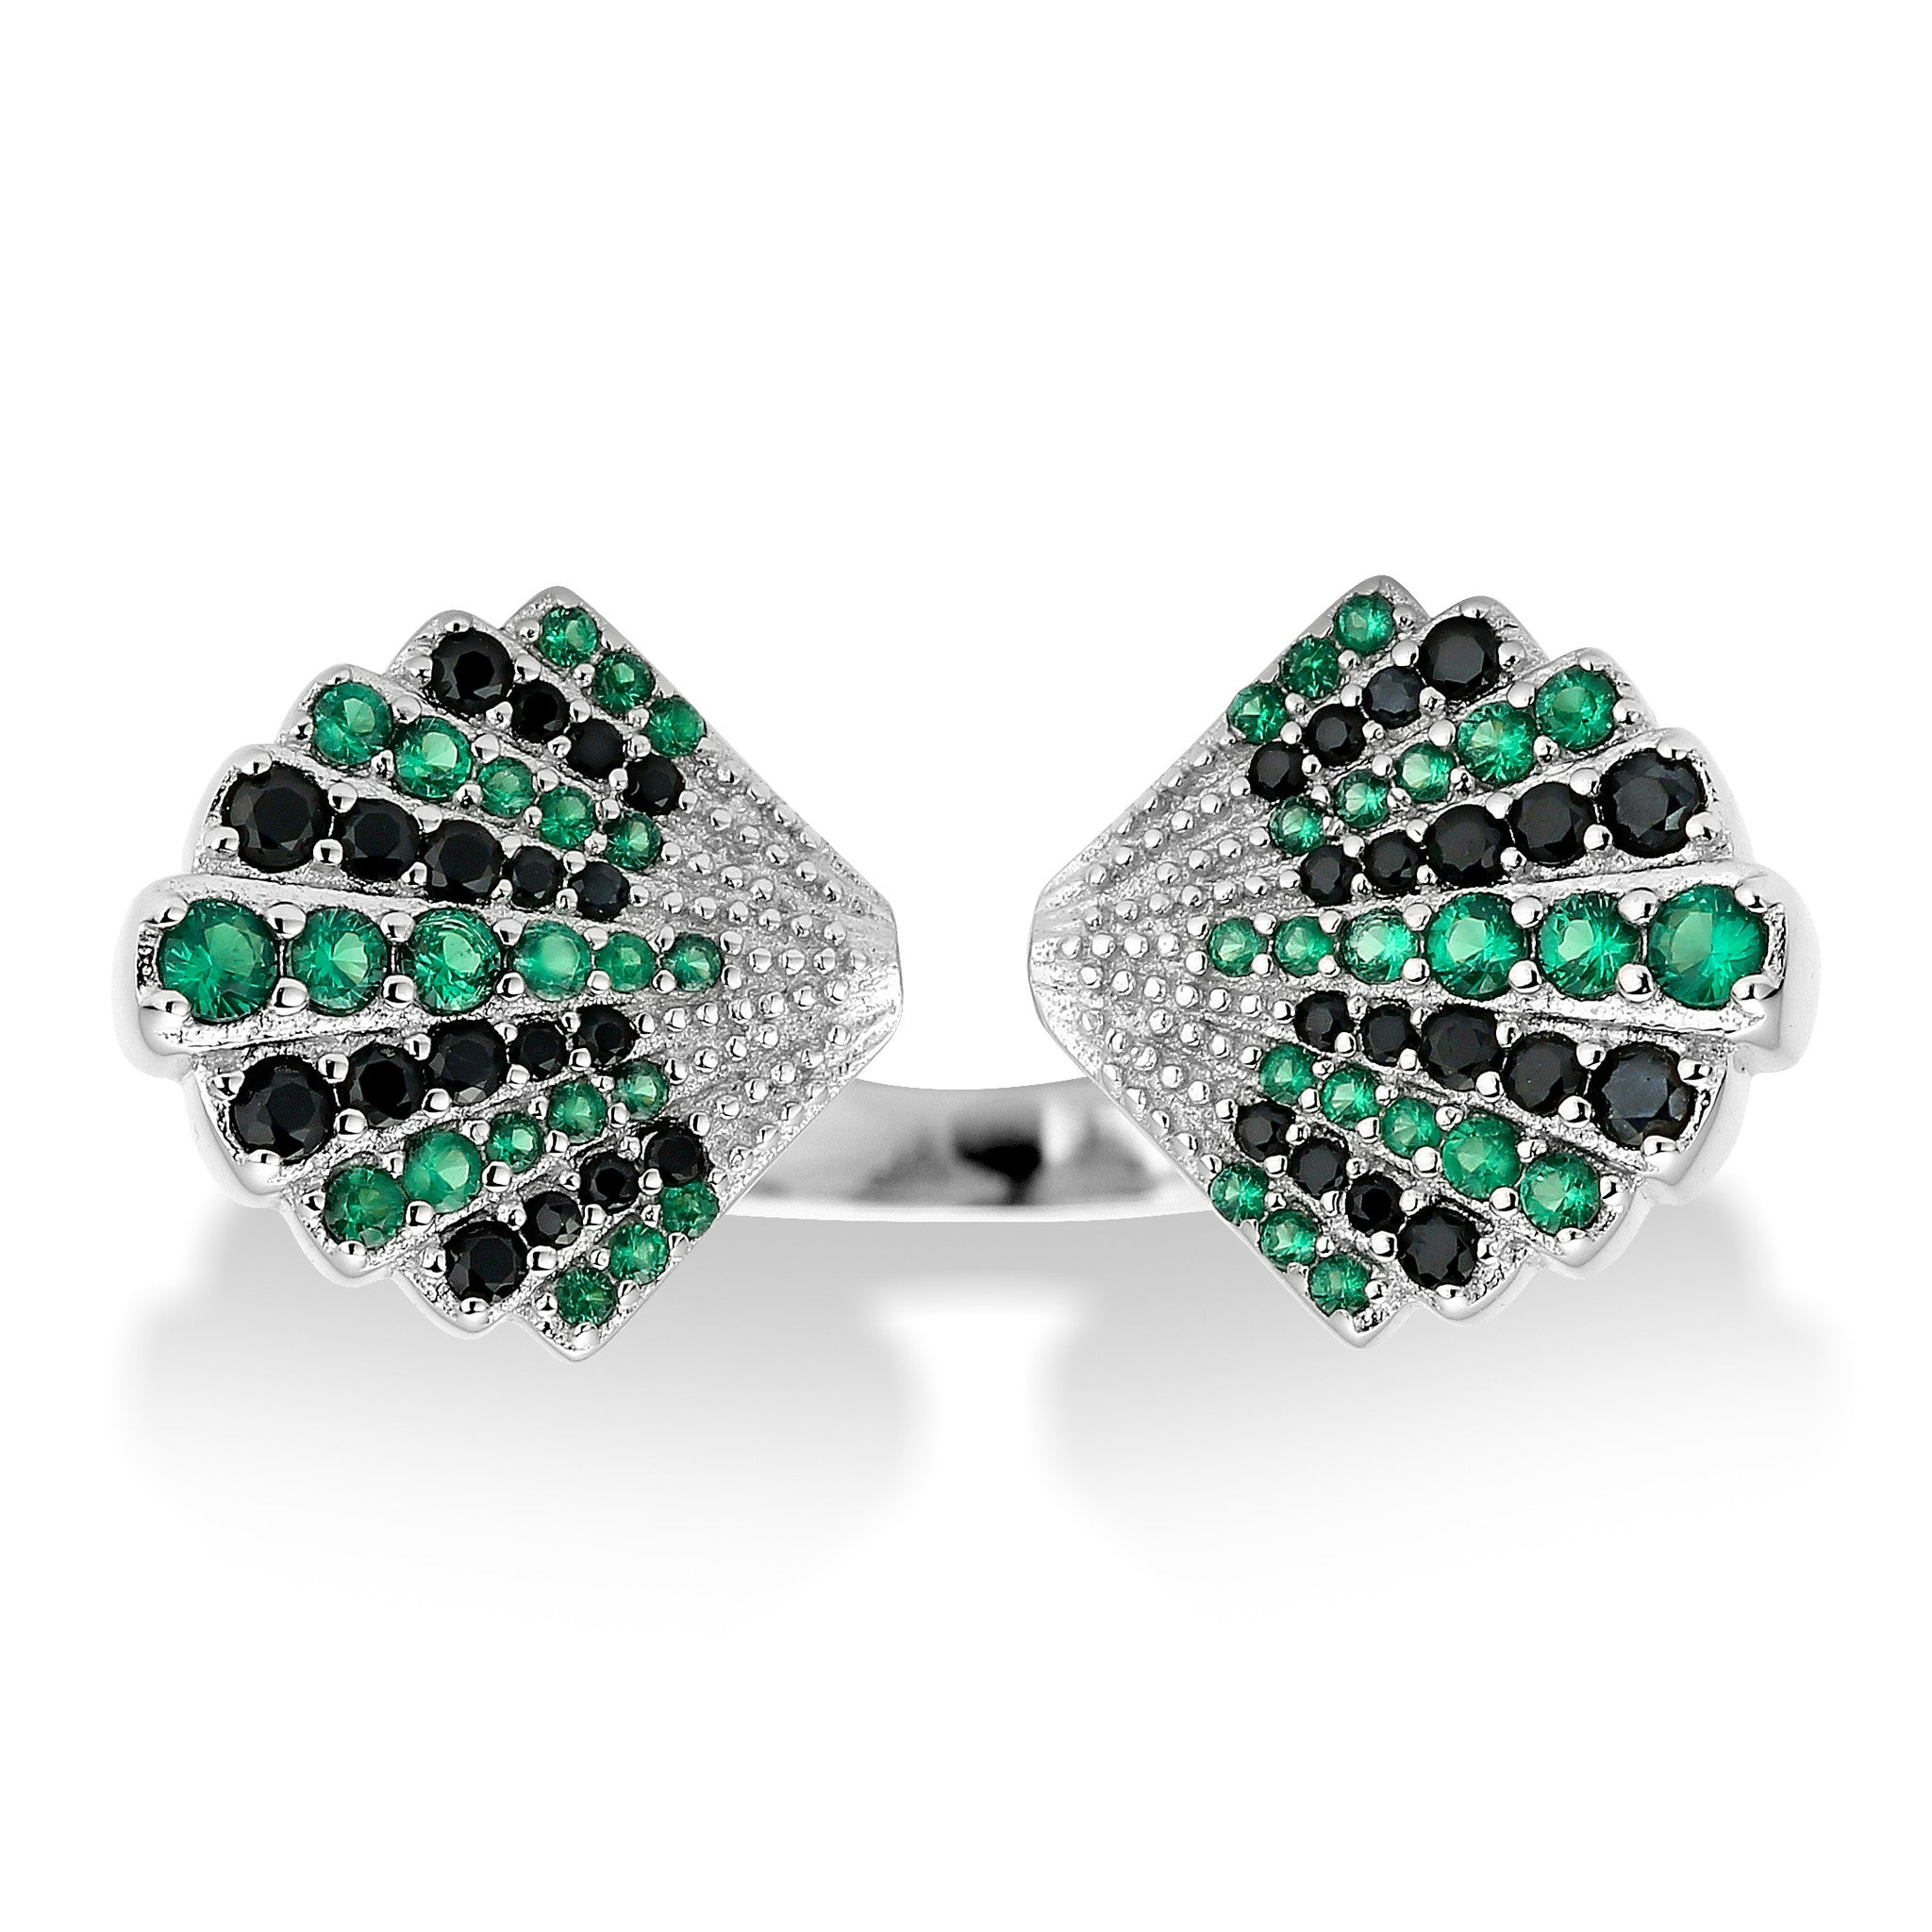 Della Vintage Inspired Ring in Art Deco Double Fan and Crystal Detail